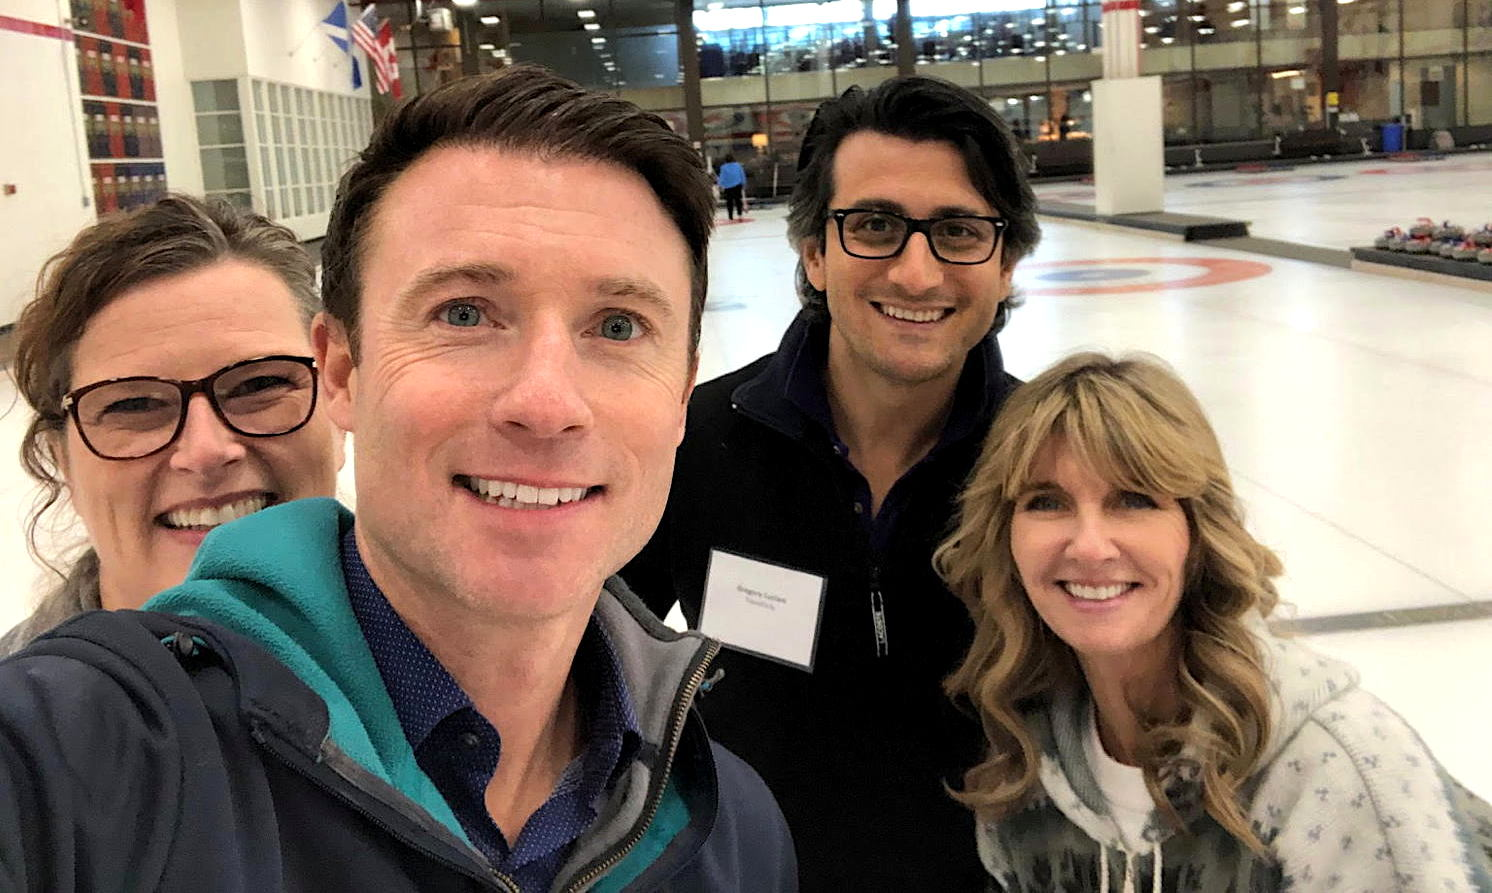 SELFIE TIME. From left: Transat's Nicole Bursey; TravelOnly's Ian Elliott, Patrick Luciani; Celebrity Cruises' Brenda Lynne Yeomans